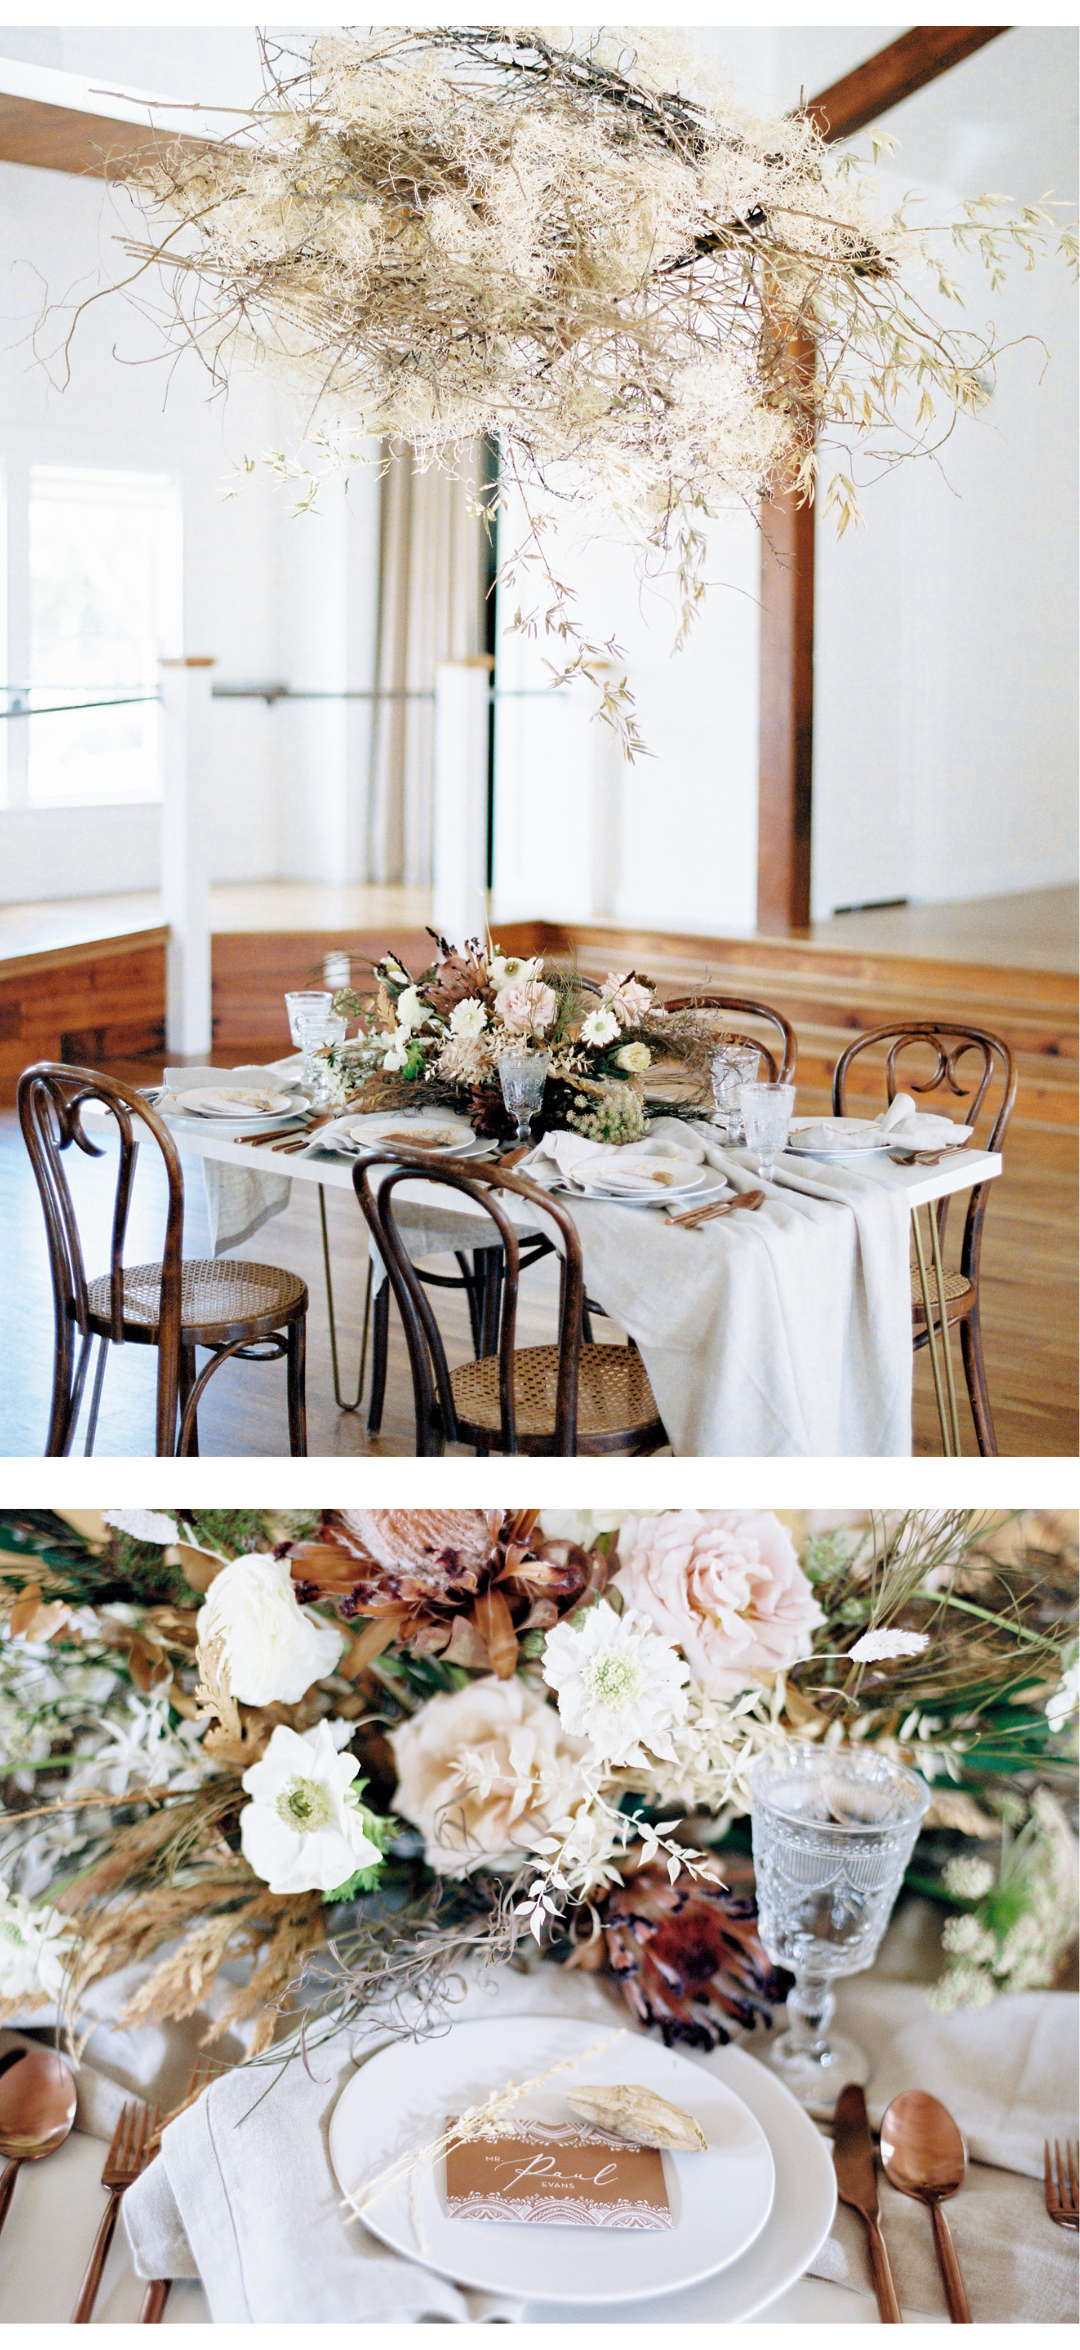 Vintage Dining Table and Chair Rentals for Texas Weddings